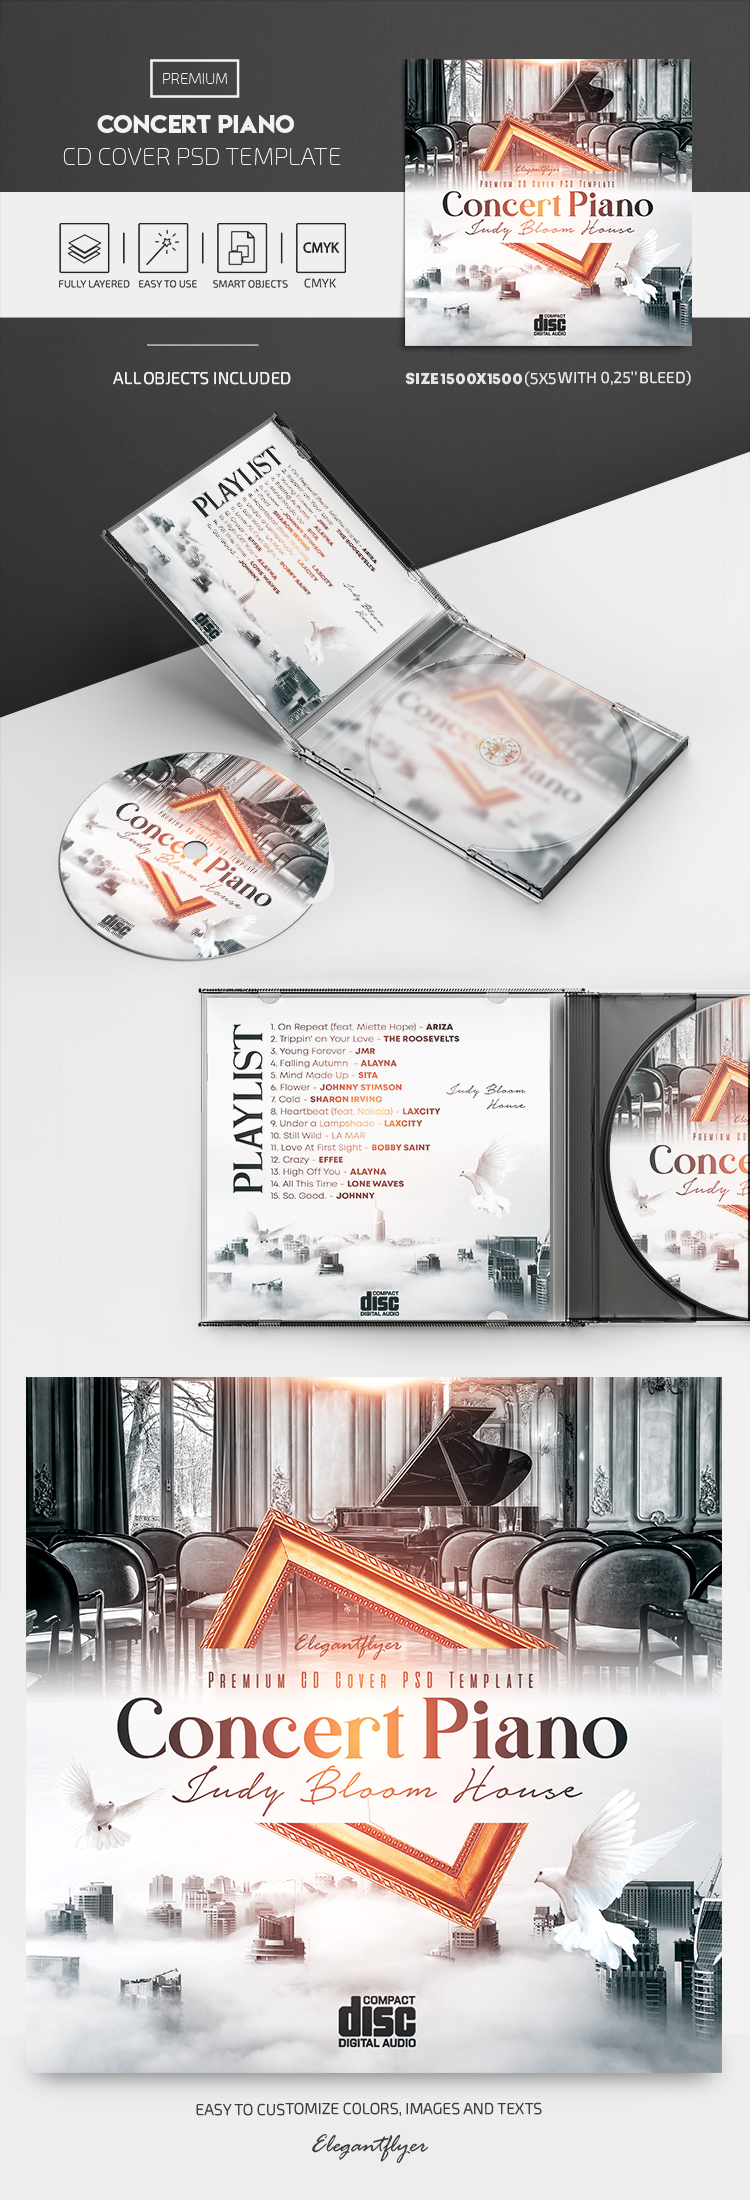 Concert Piano – Premium CD Cover PSD Template